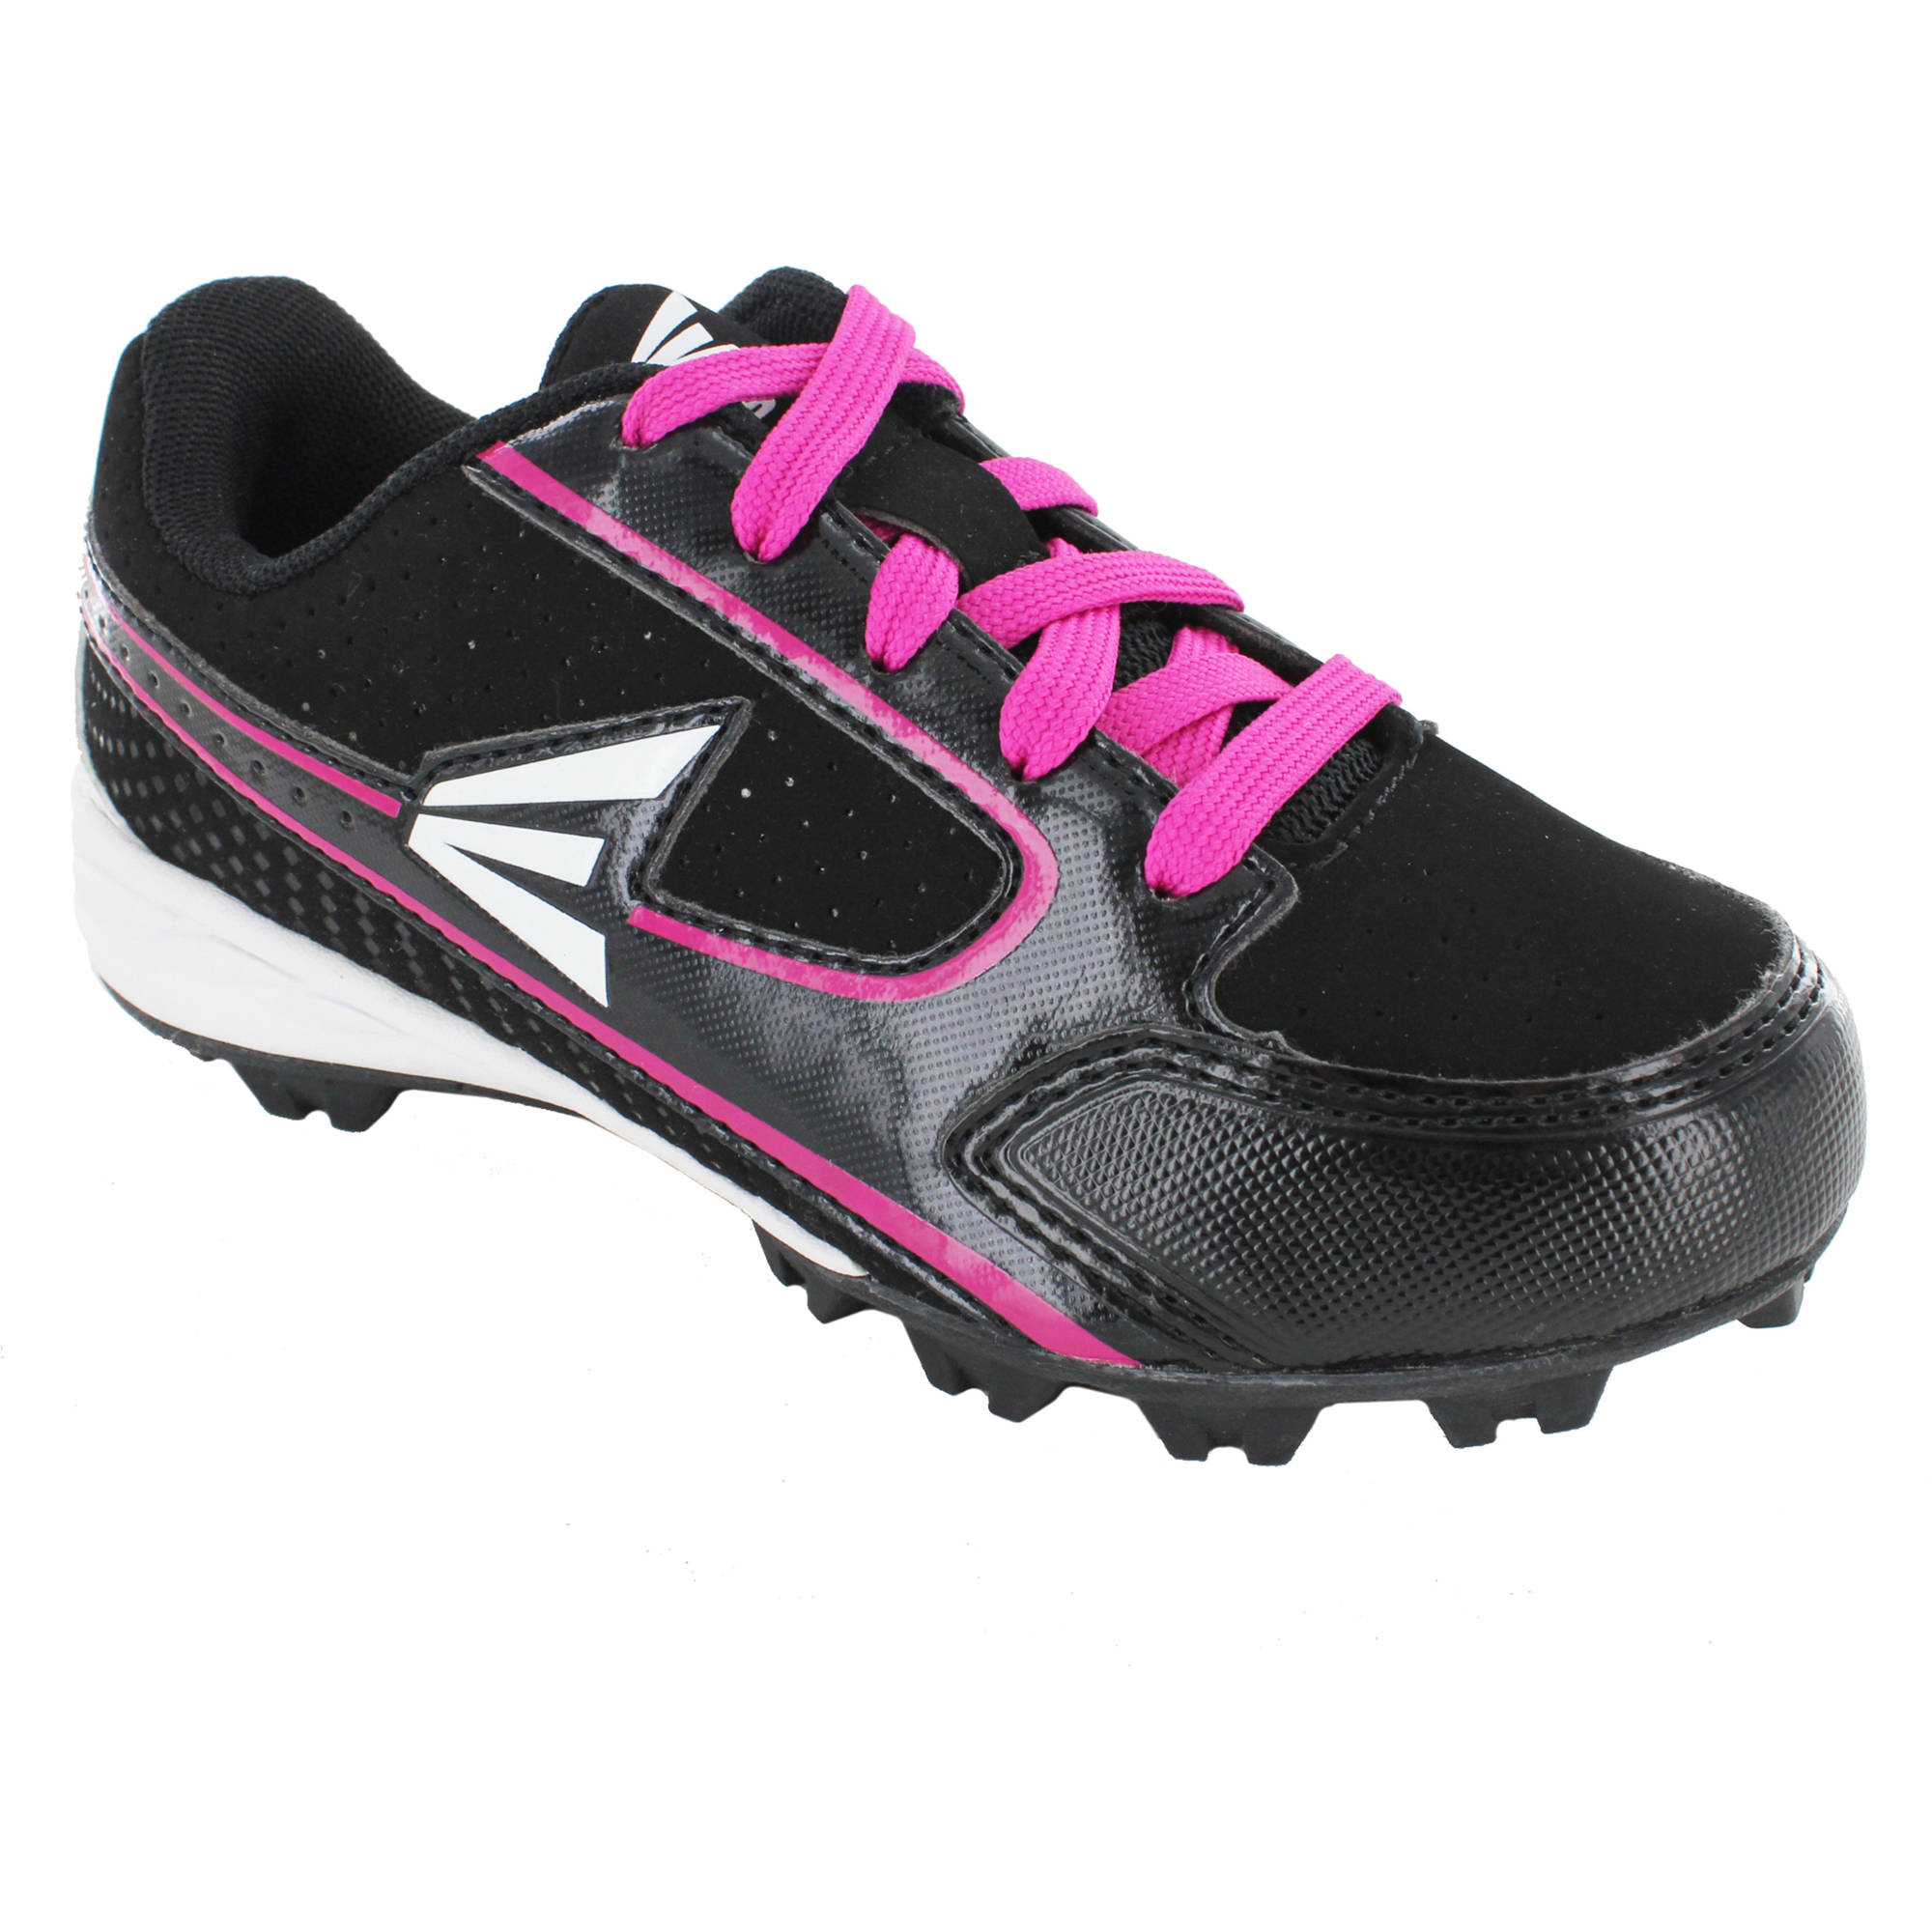 Easton Girls' Athletic Sonic Low Softball Cleat